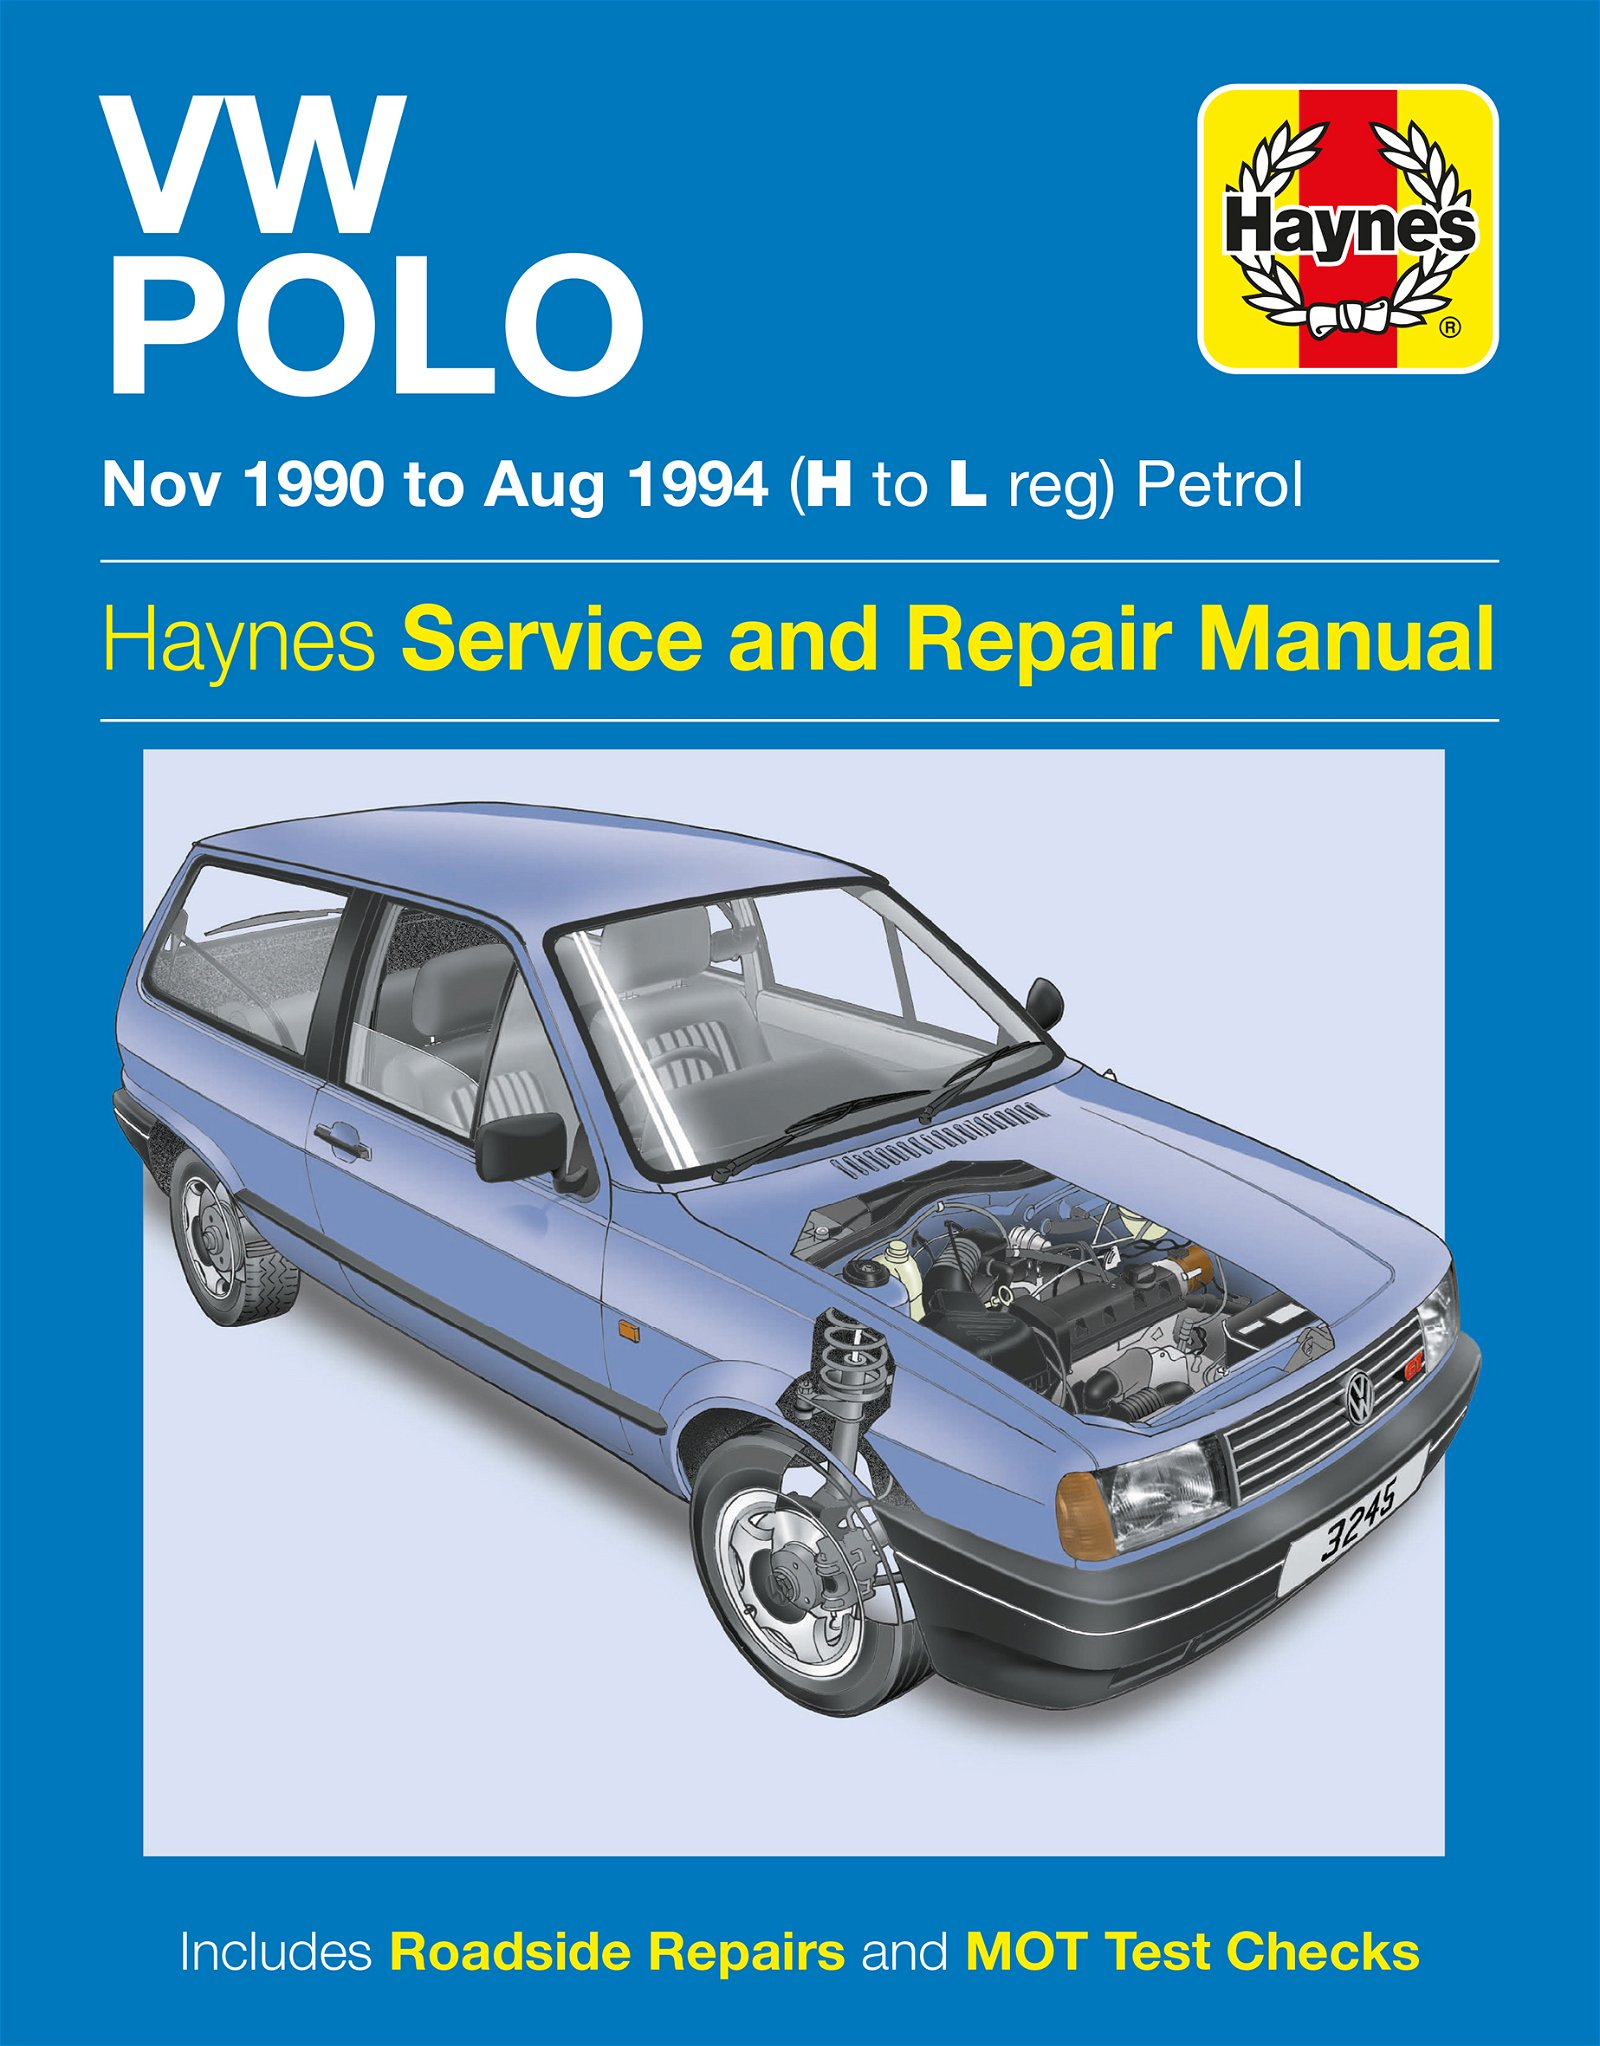 [Manuel UK en Anglais] VW Polo Petrol  (Nov 90 - Aug 94)  H to L